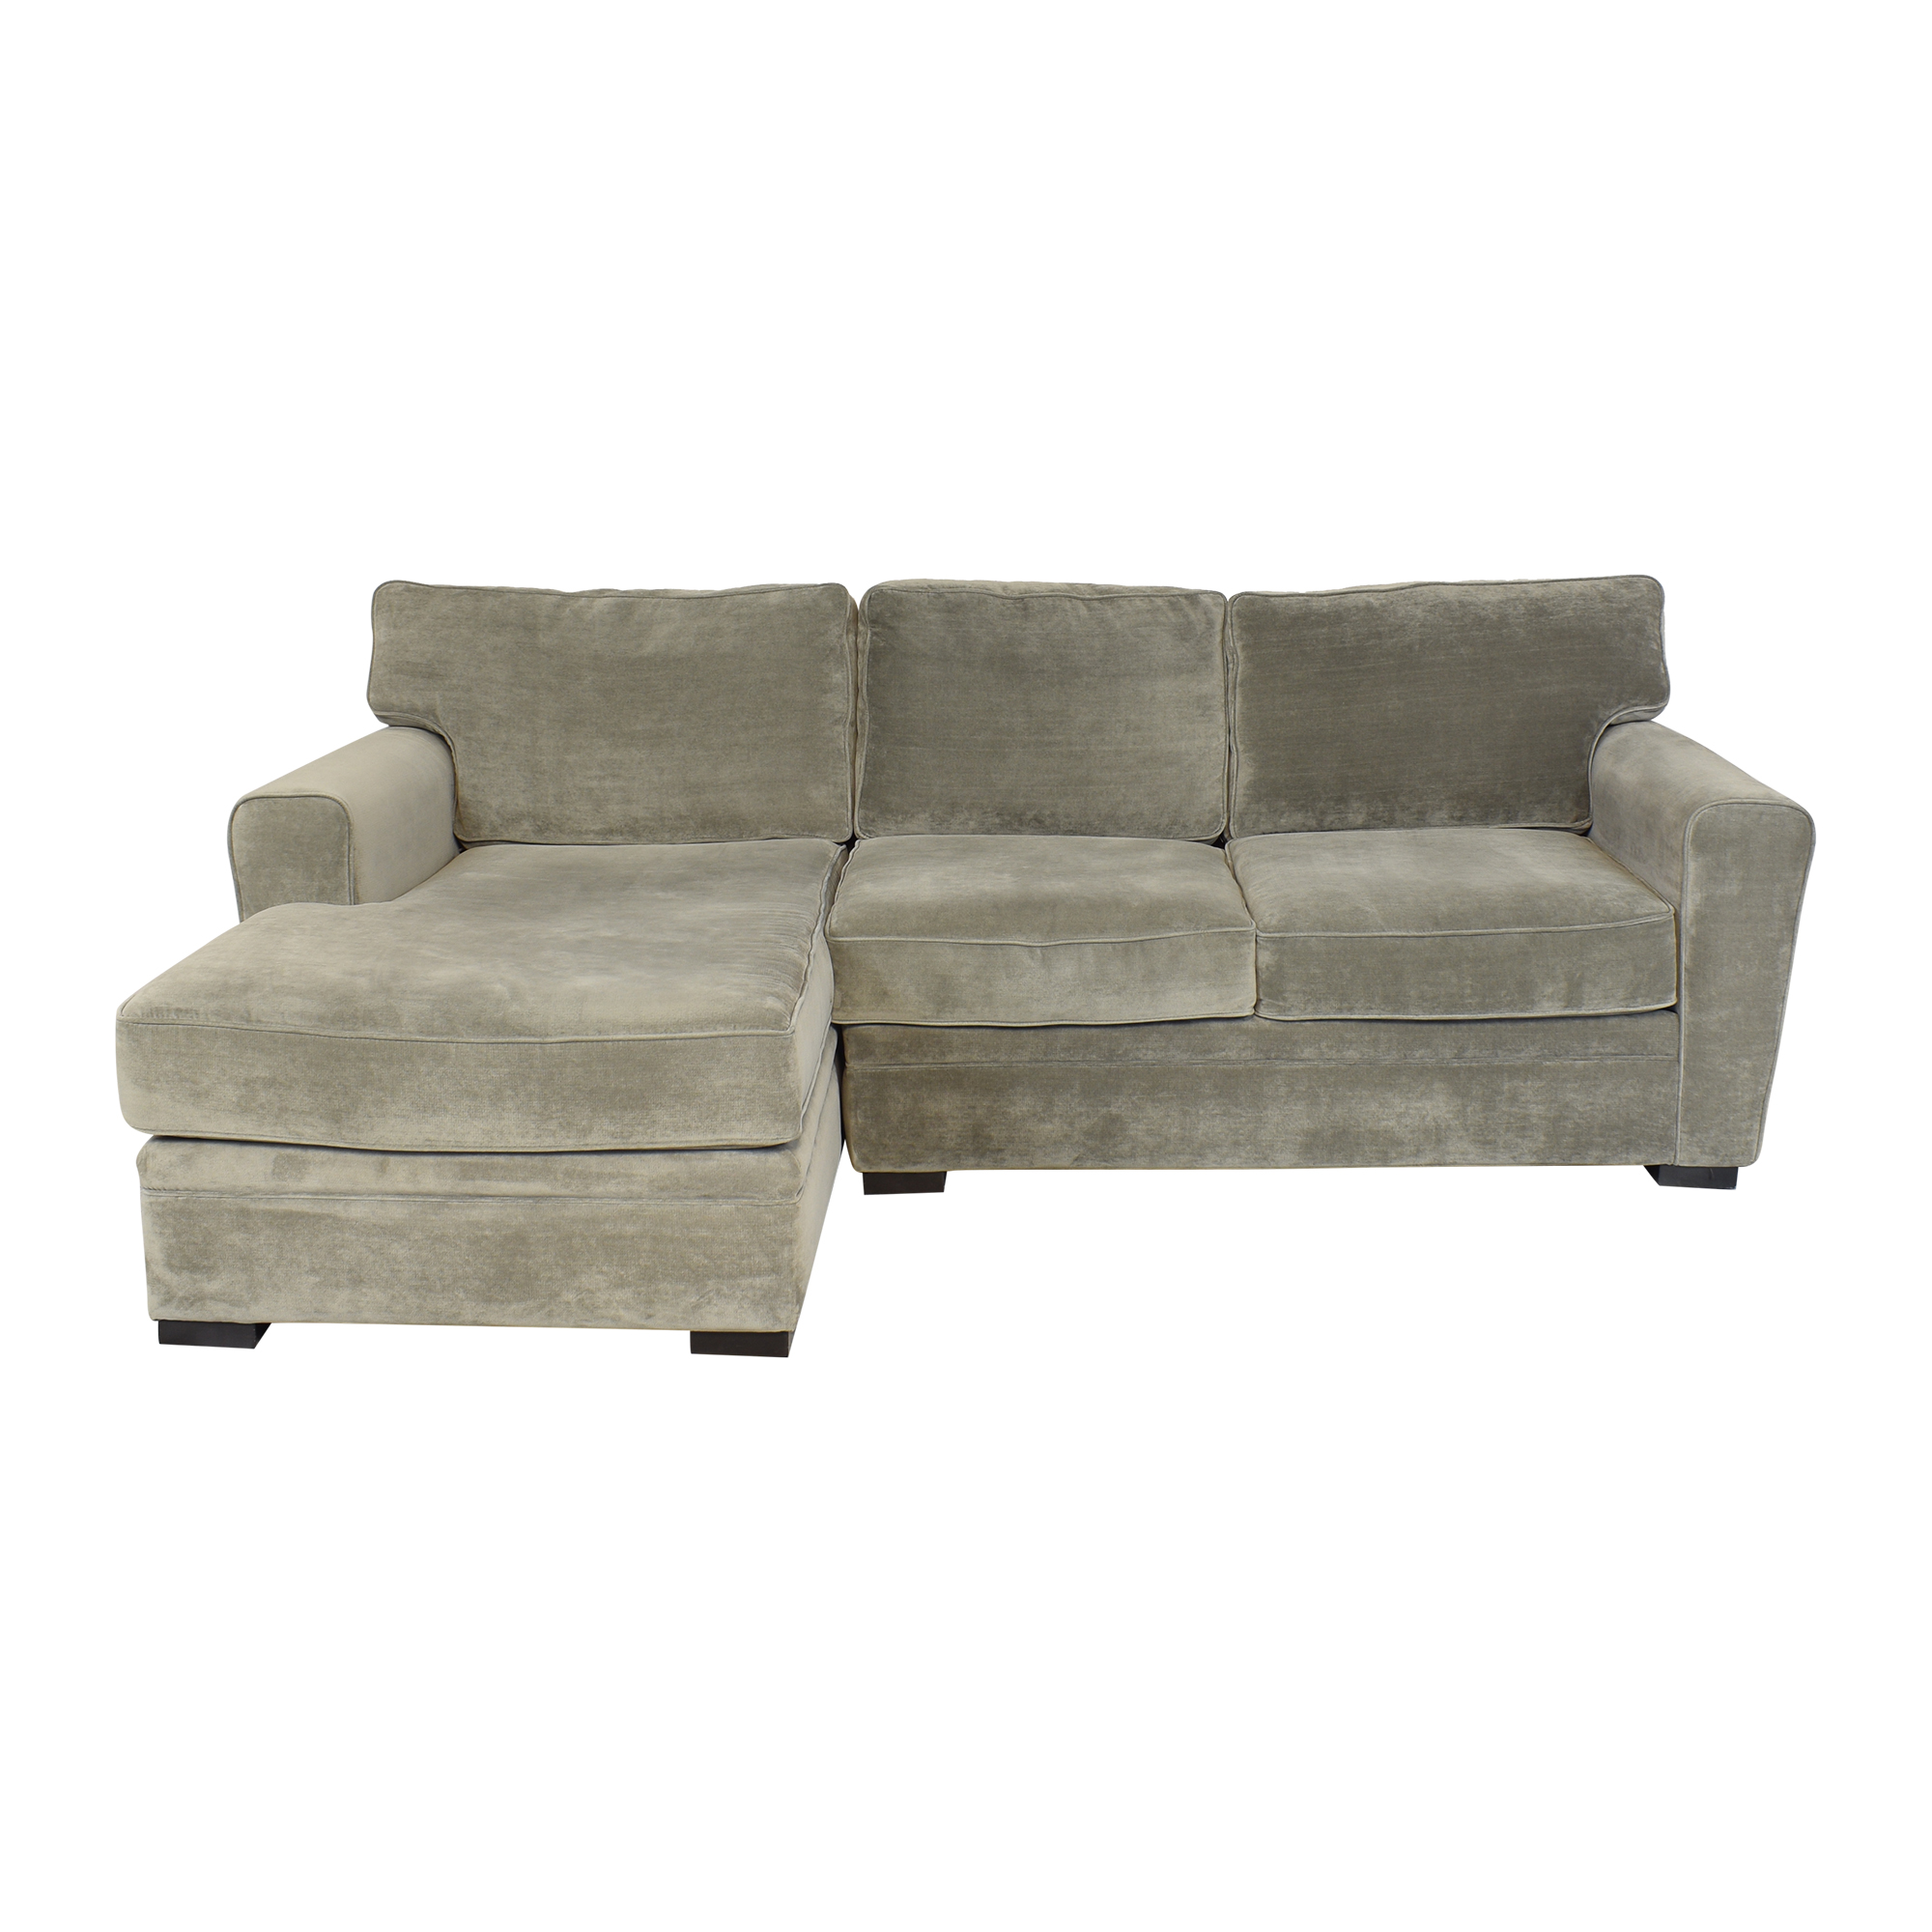 Raymour & Flanigan Raymour & Flanigan Artemis II Sectional Sofa with Chaise dimensions